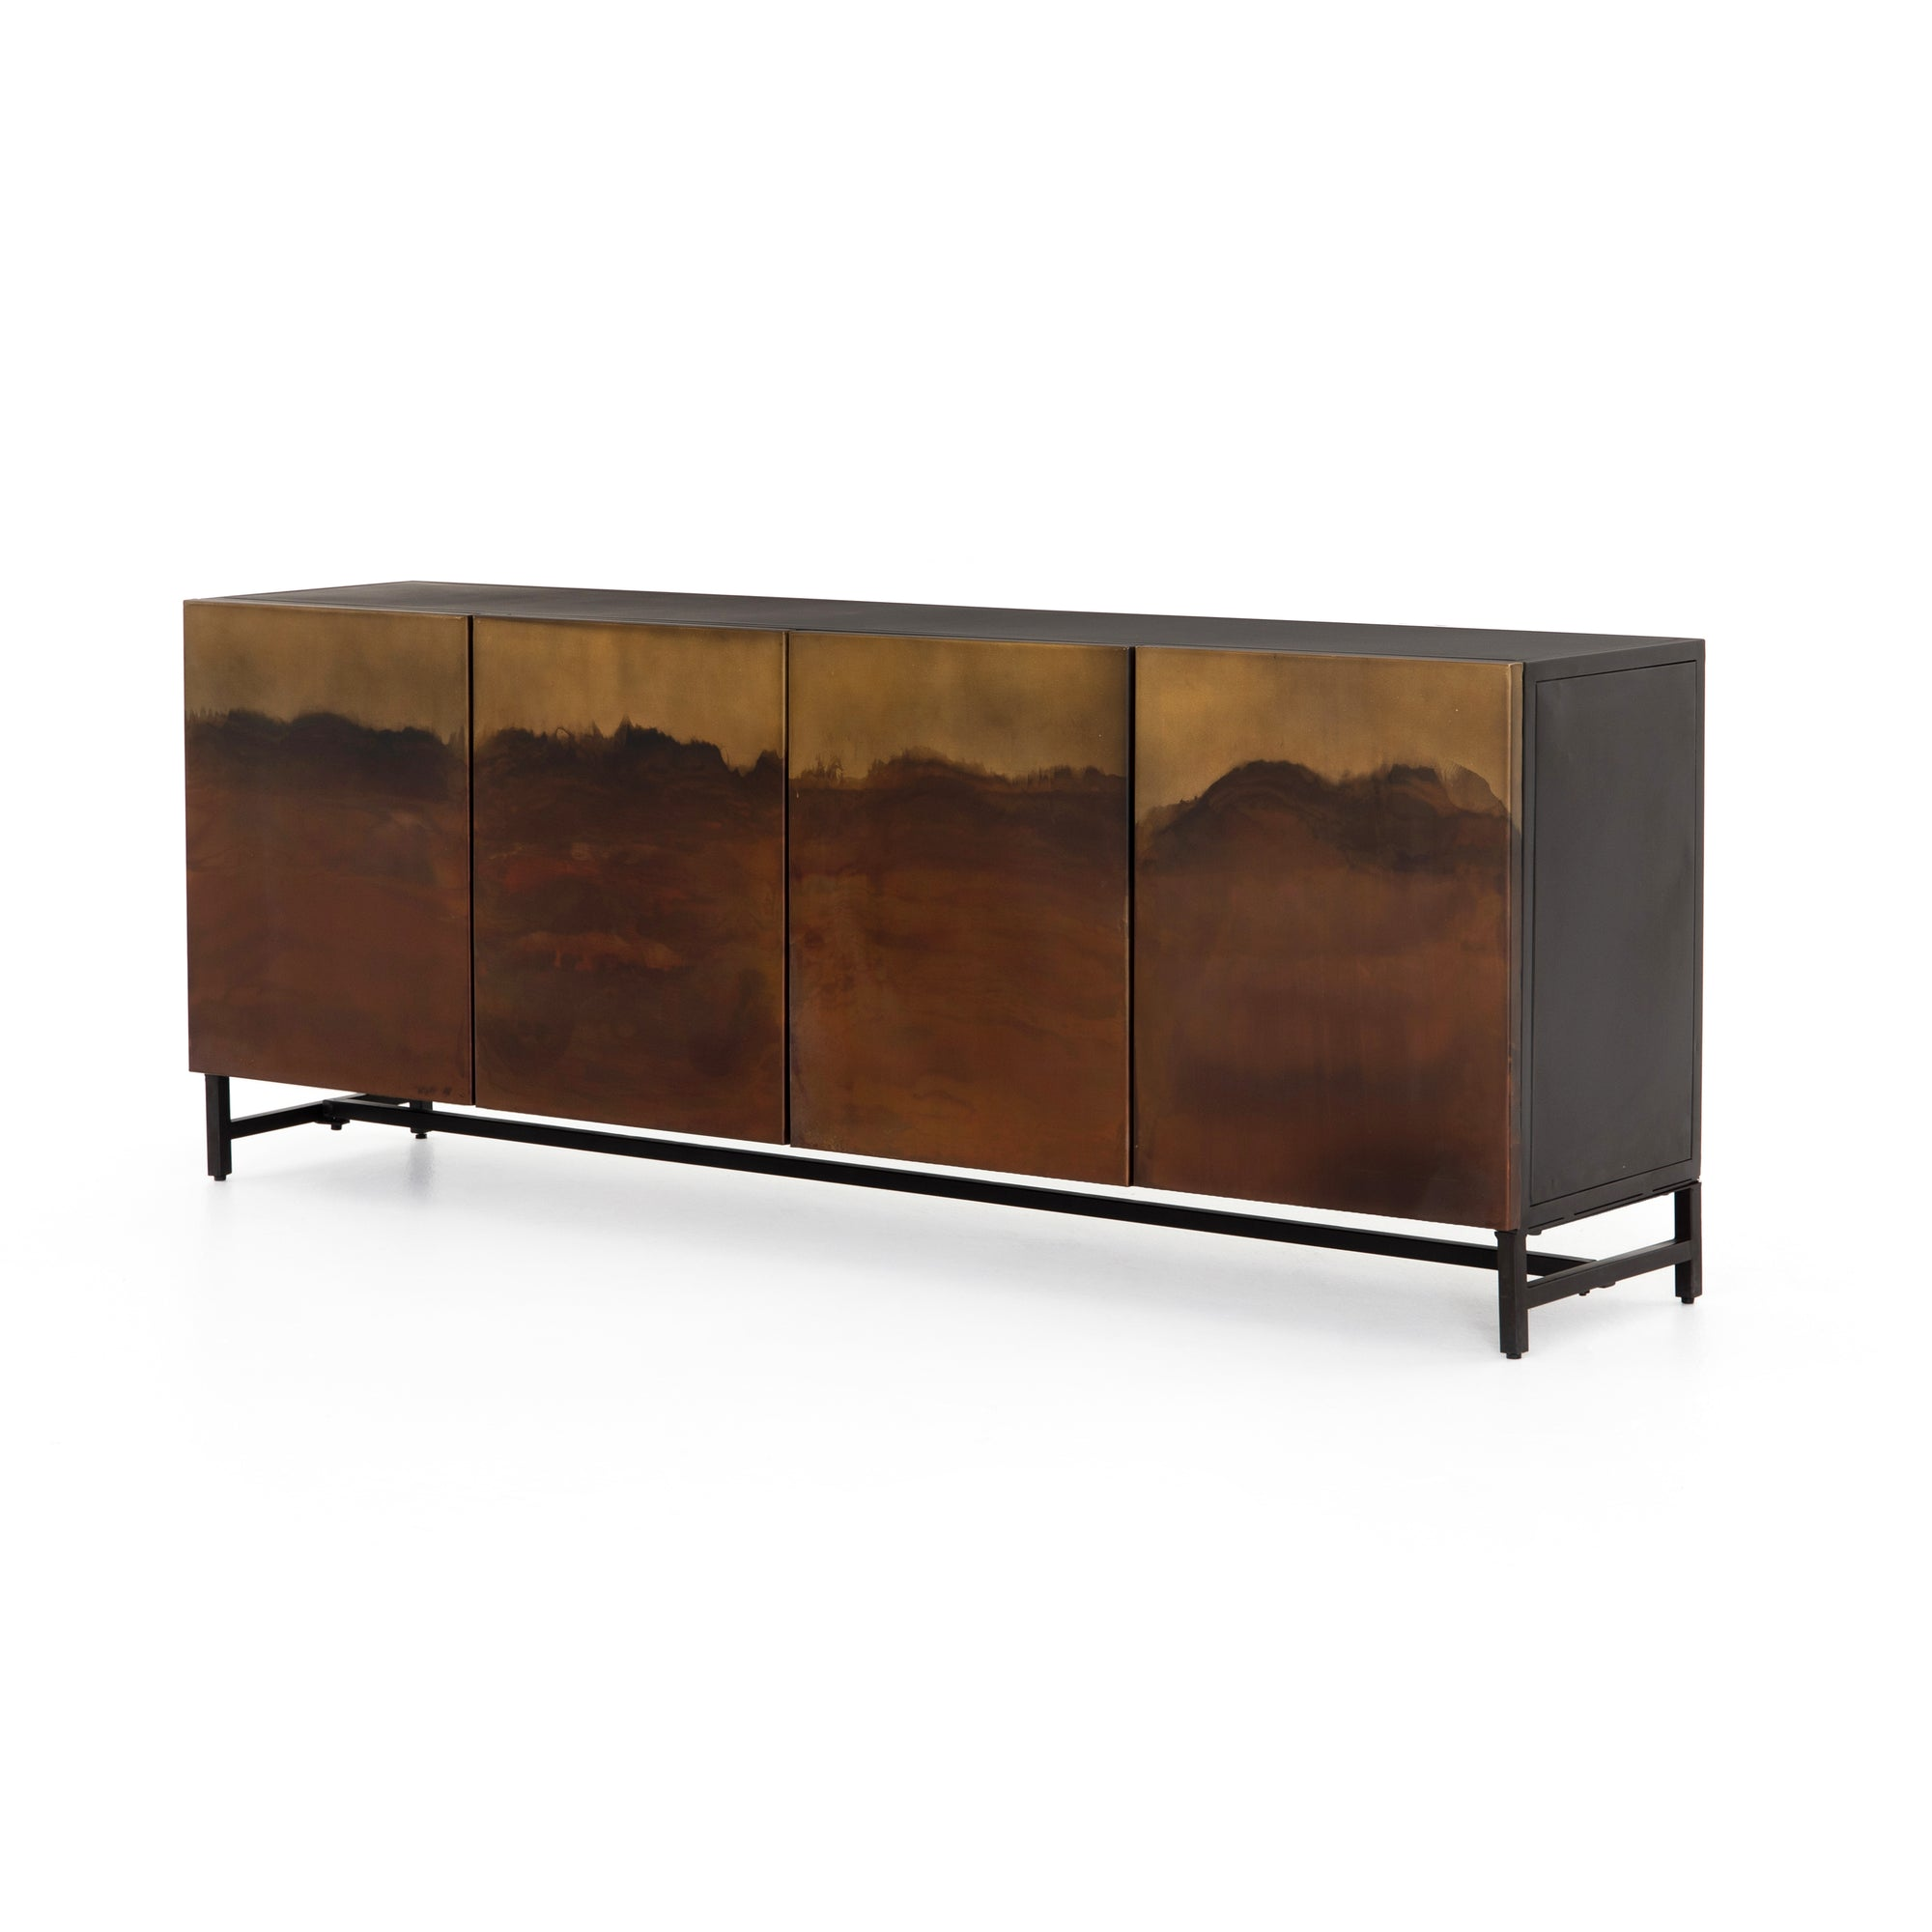 Stormy Sideboard - Aged Brown